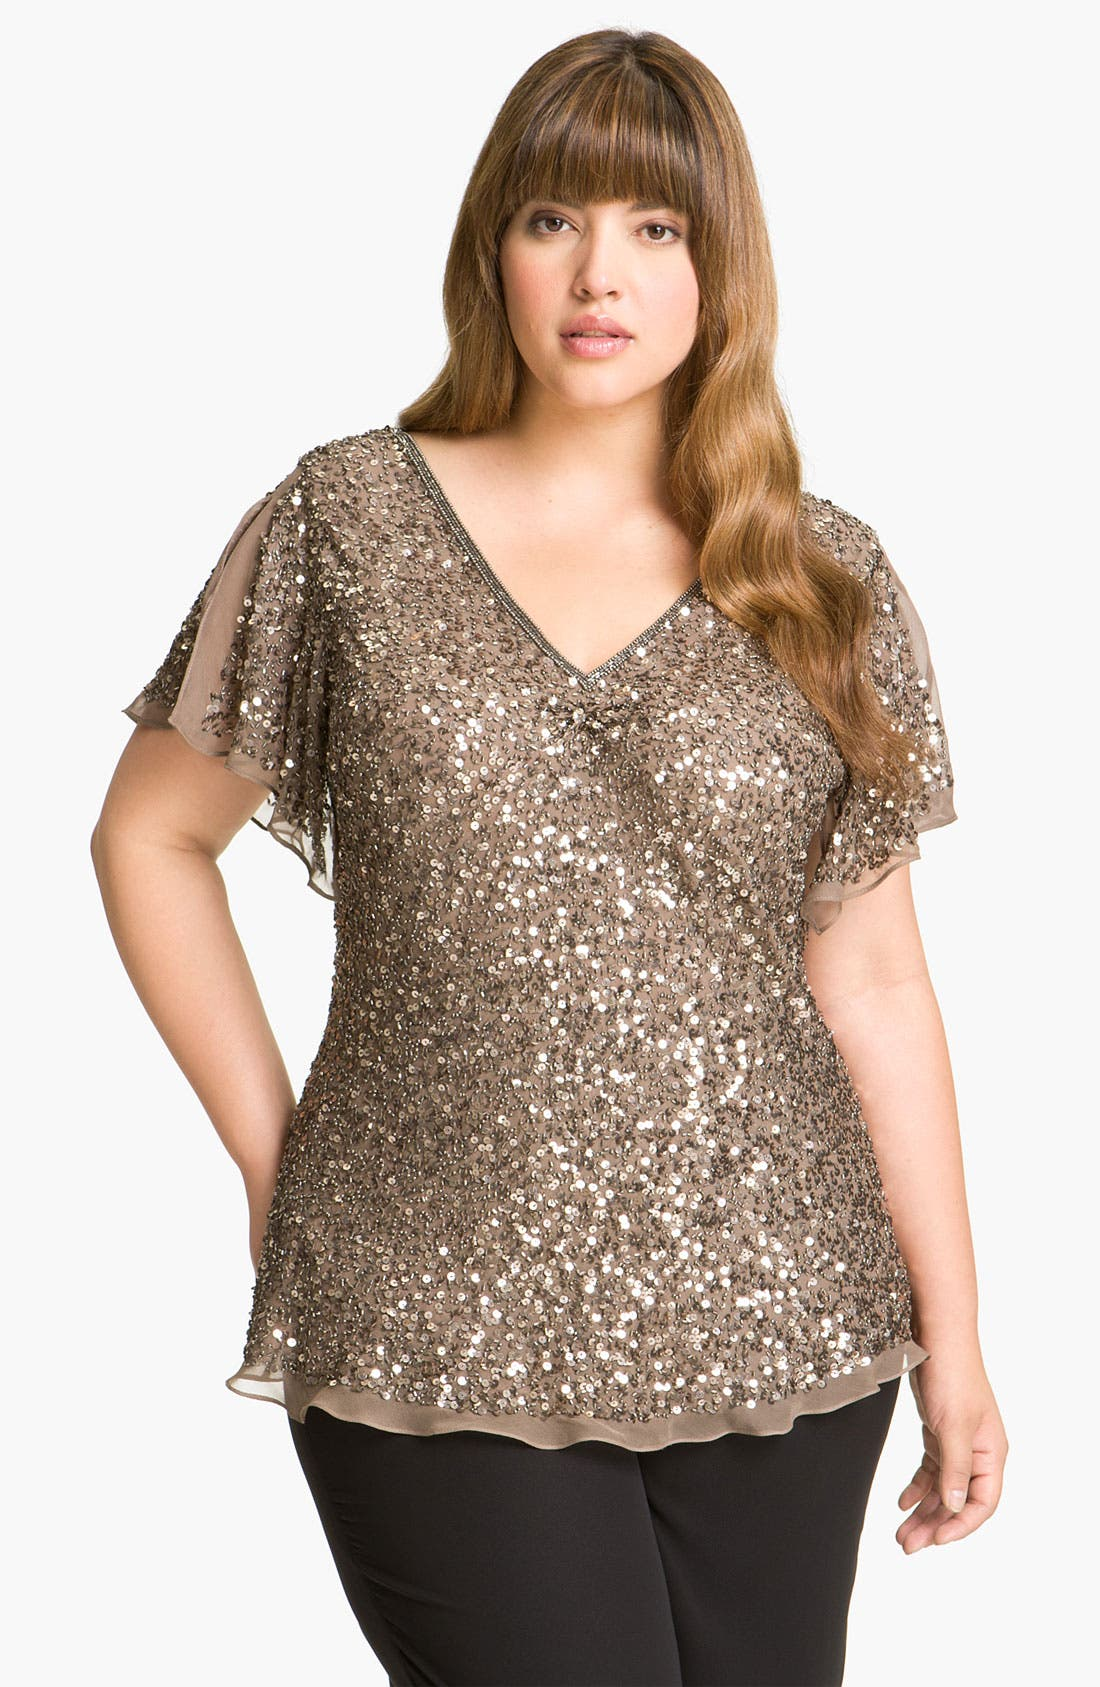 Main Image - Adrianna Papell Sequin Chiffon Top (Plus Size)